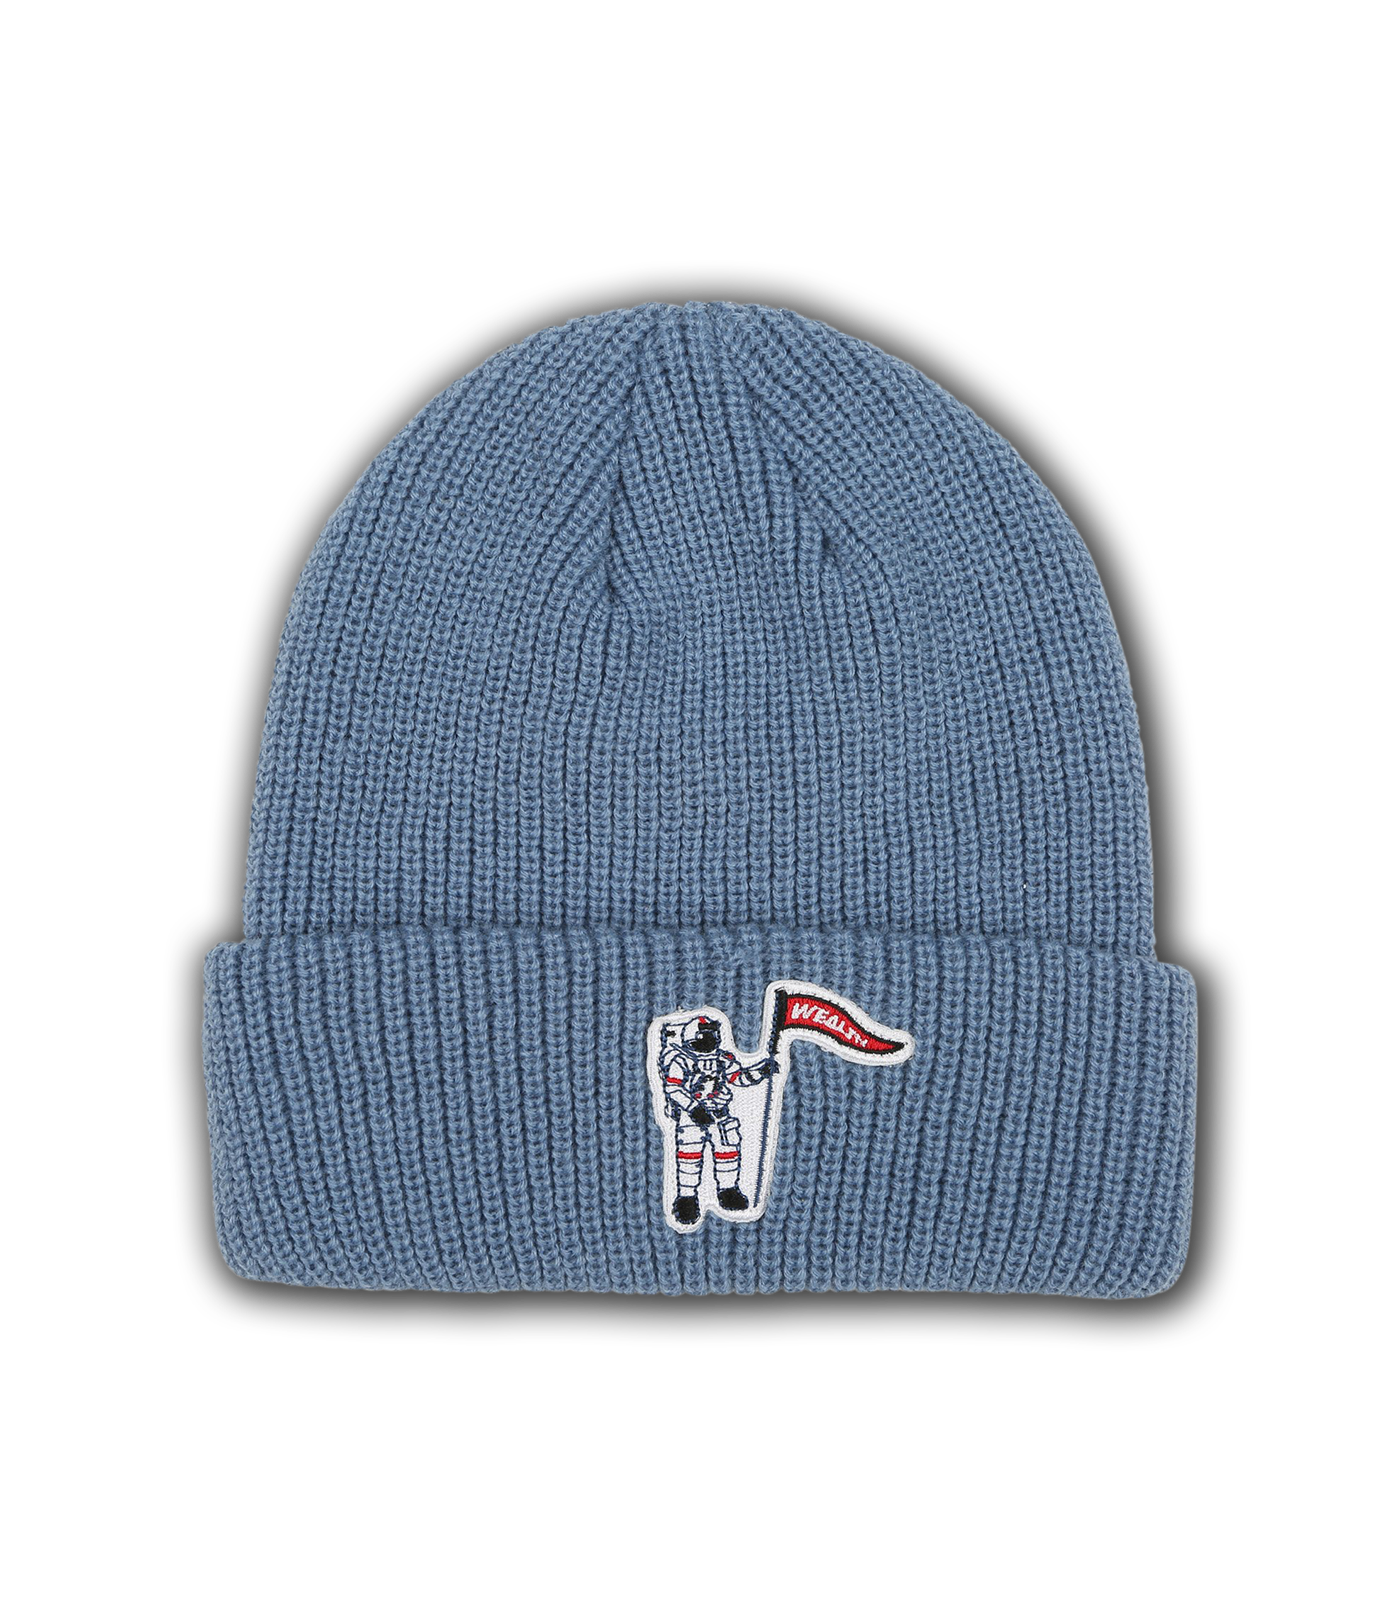 WEALTH PATCH BEANIE - TEAL